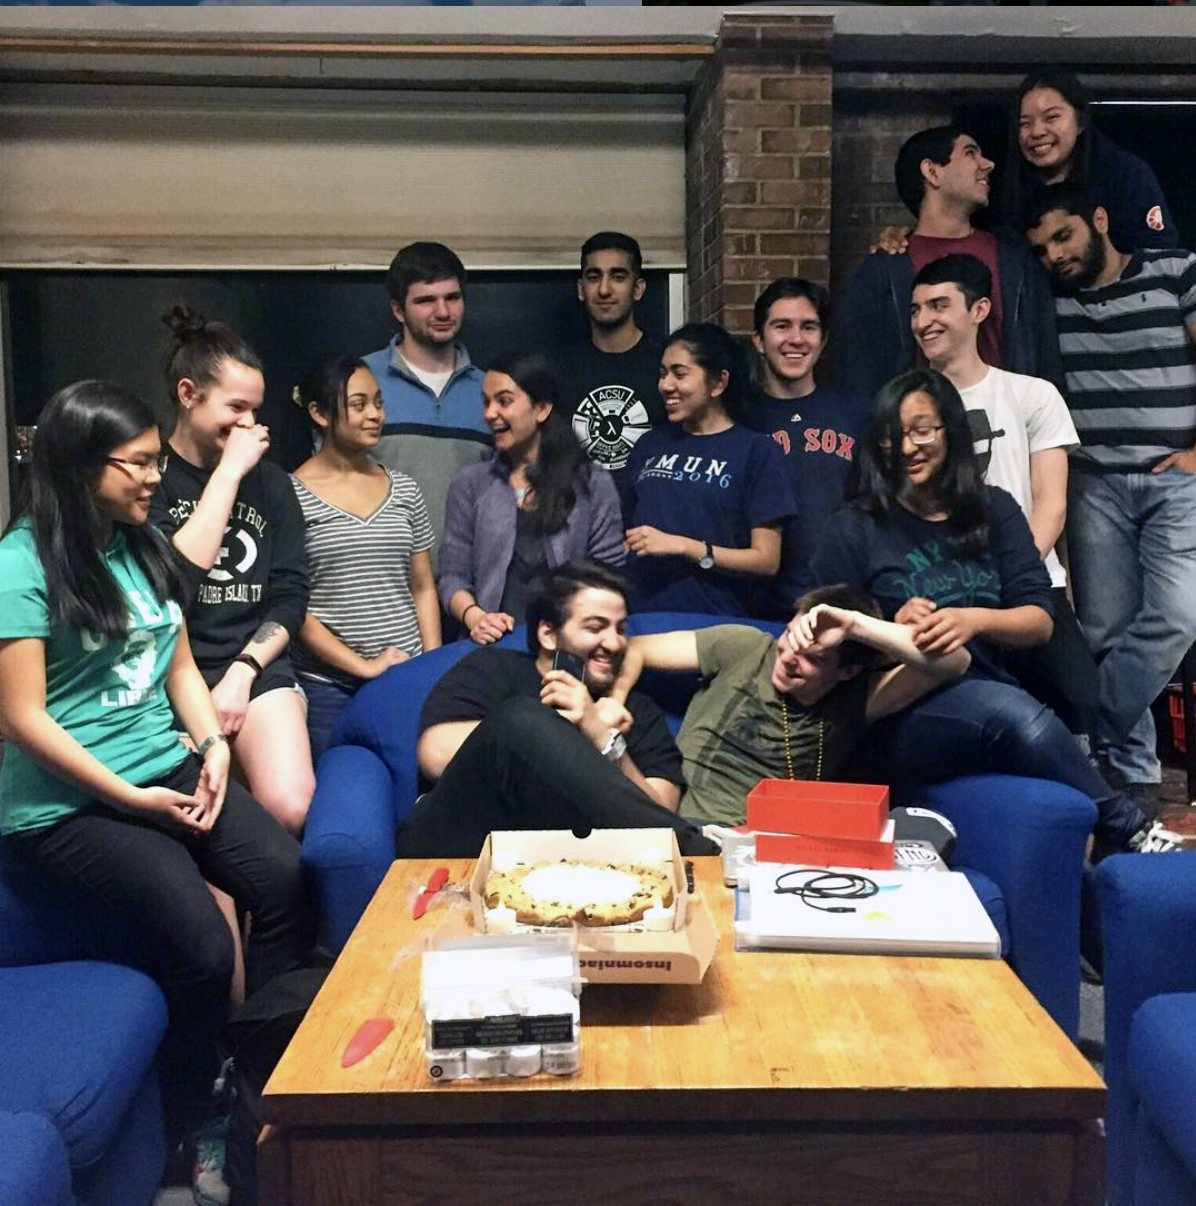 Ben (center) and his friends in the lounge at Holland International Living Center, the residence hall where they met four years ago.